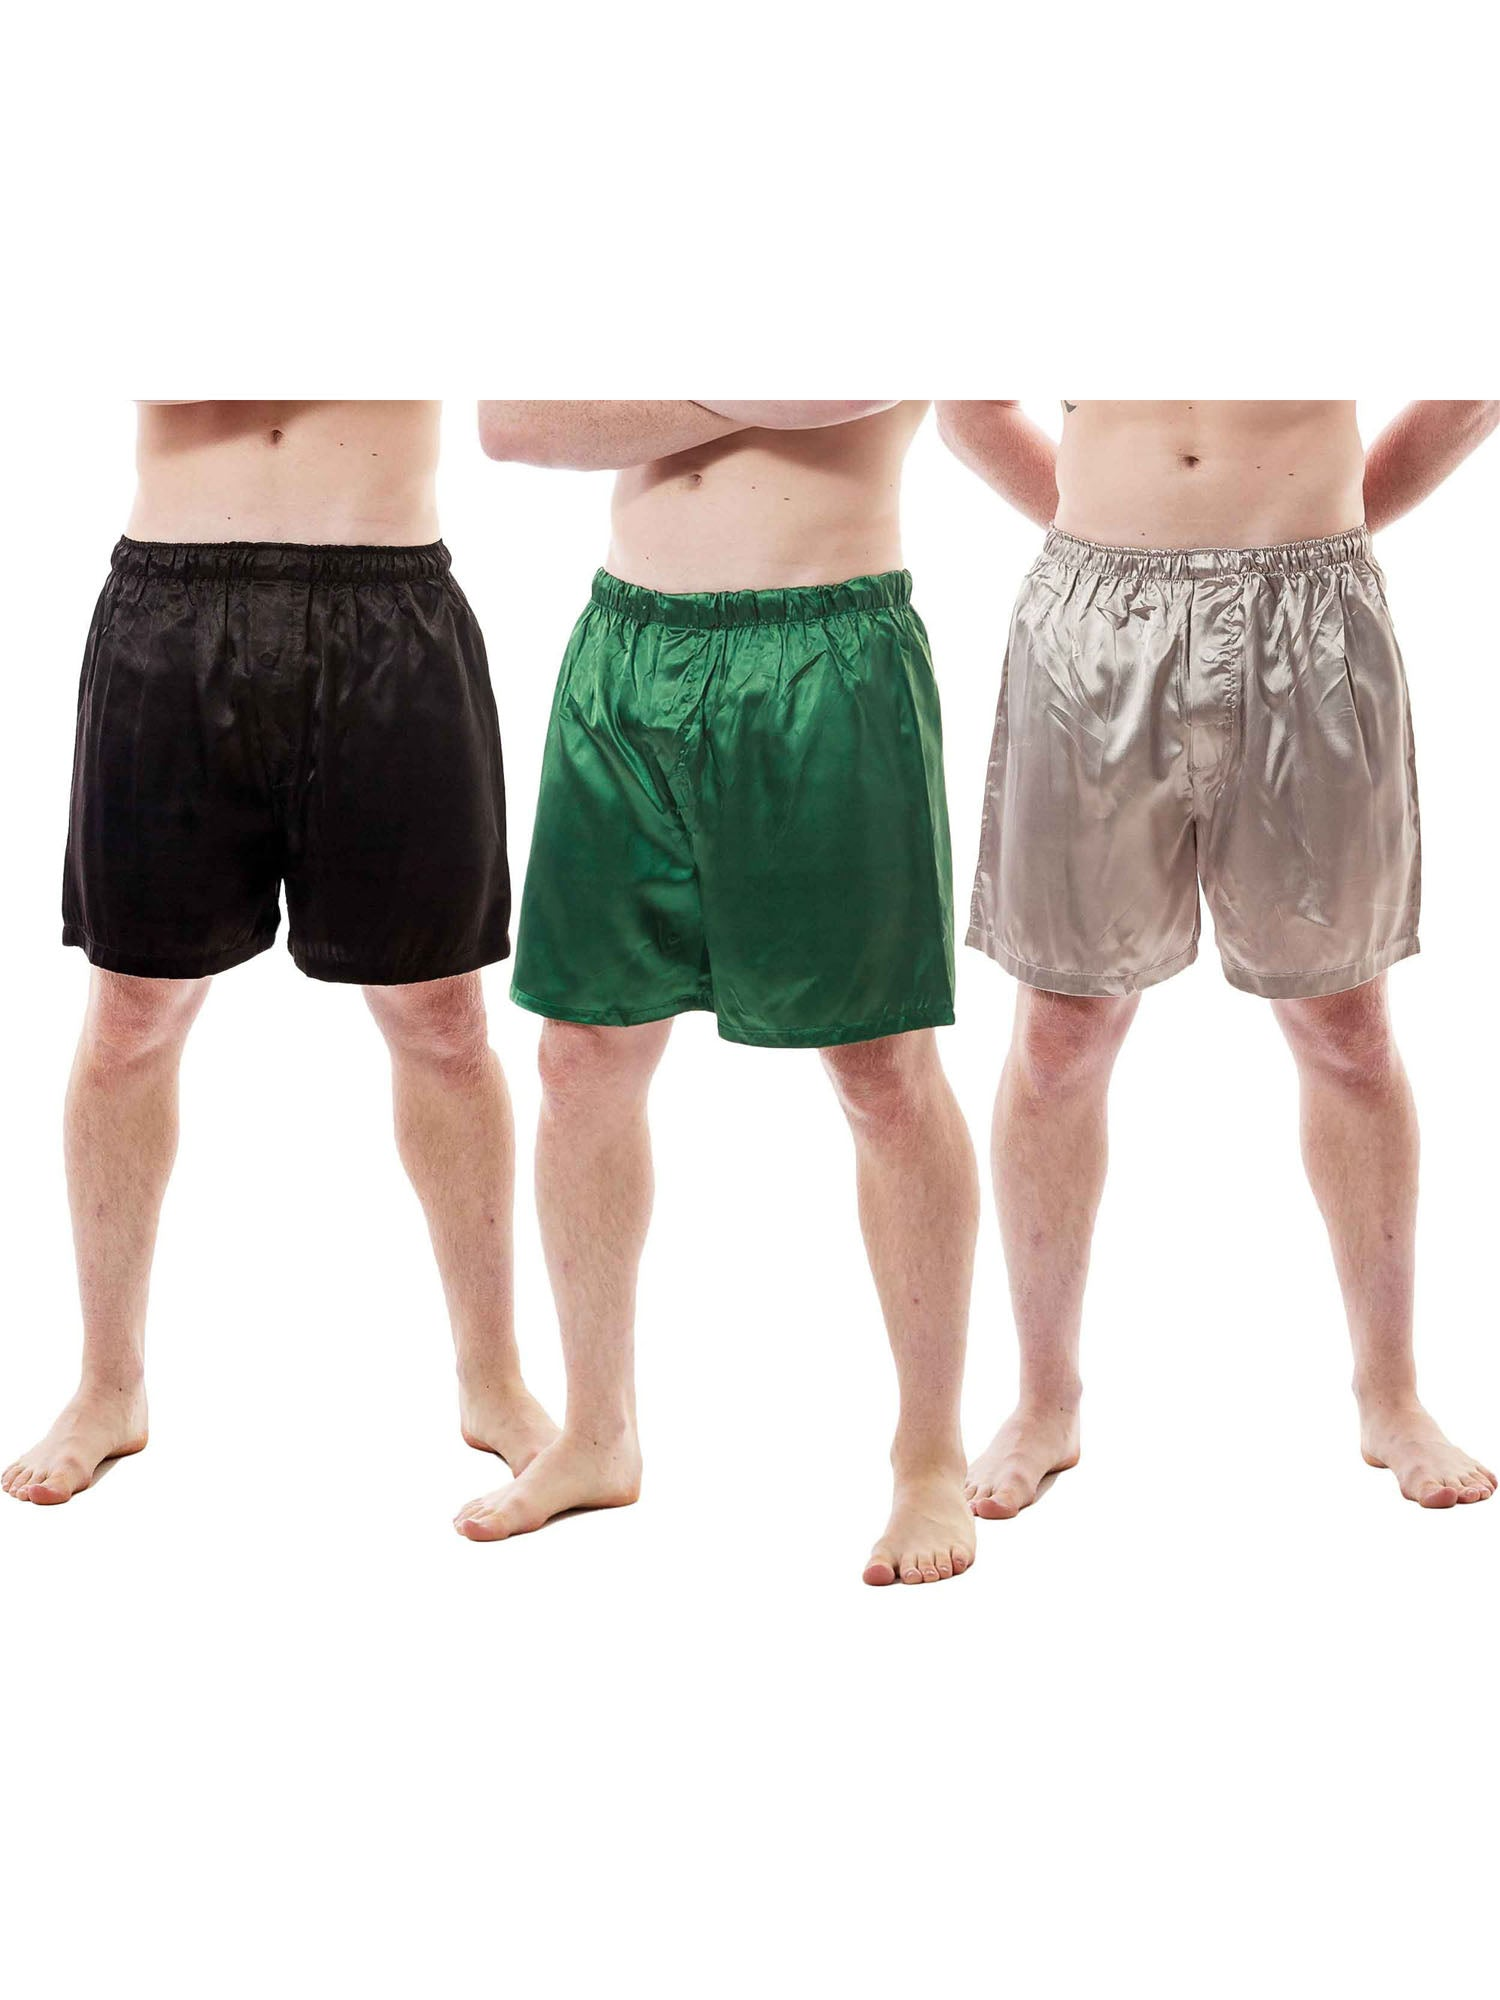 Men's Shorts / Boxers, Satin, 3-Piece Multicolor Combo Pack (MSC01-B)